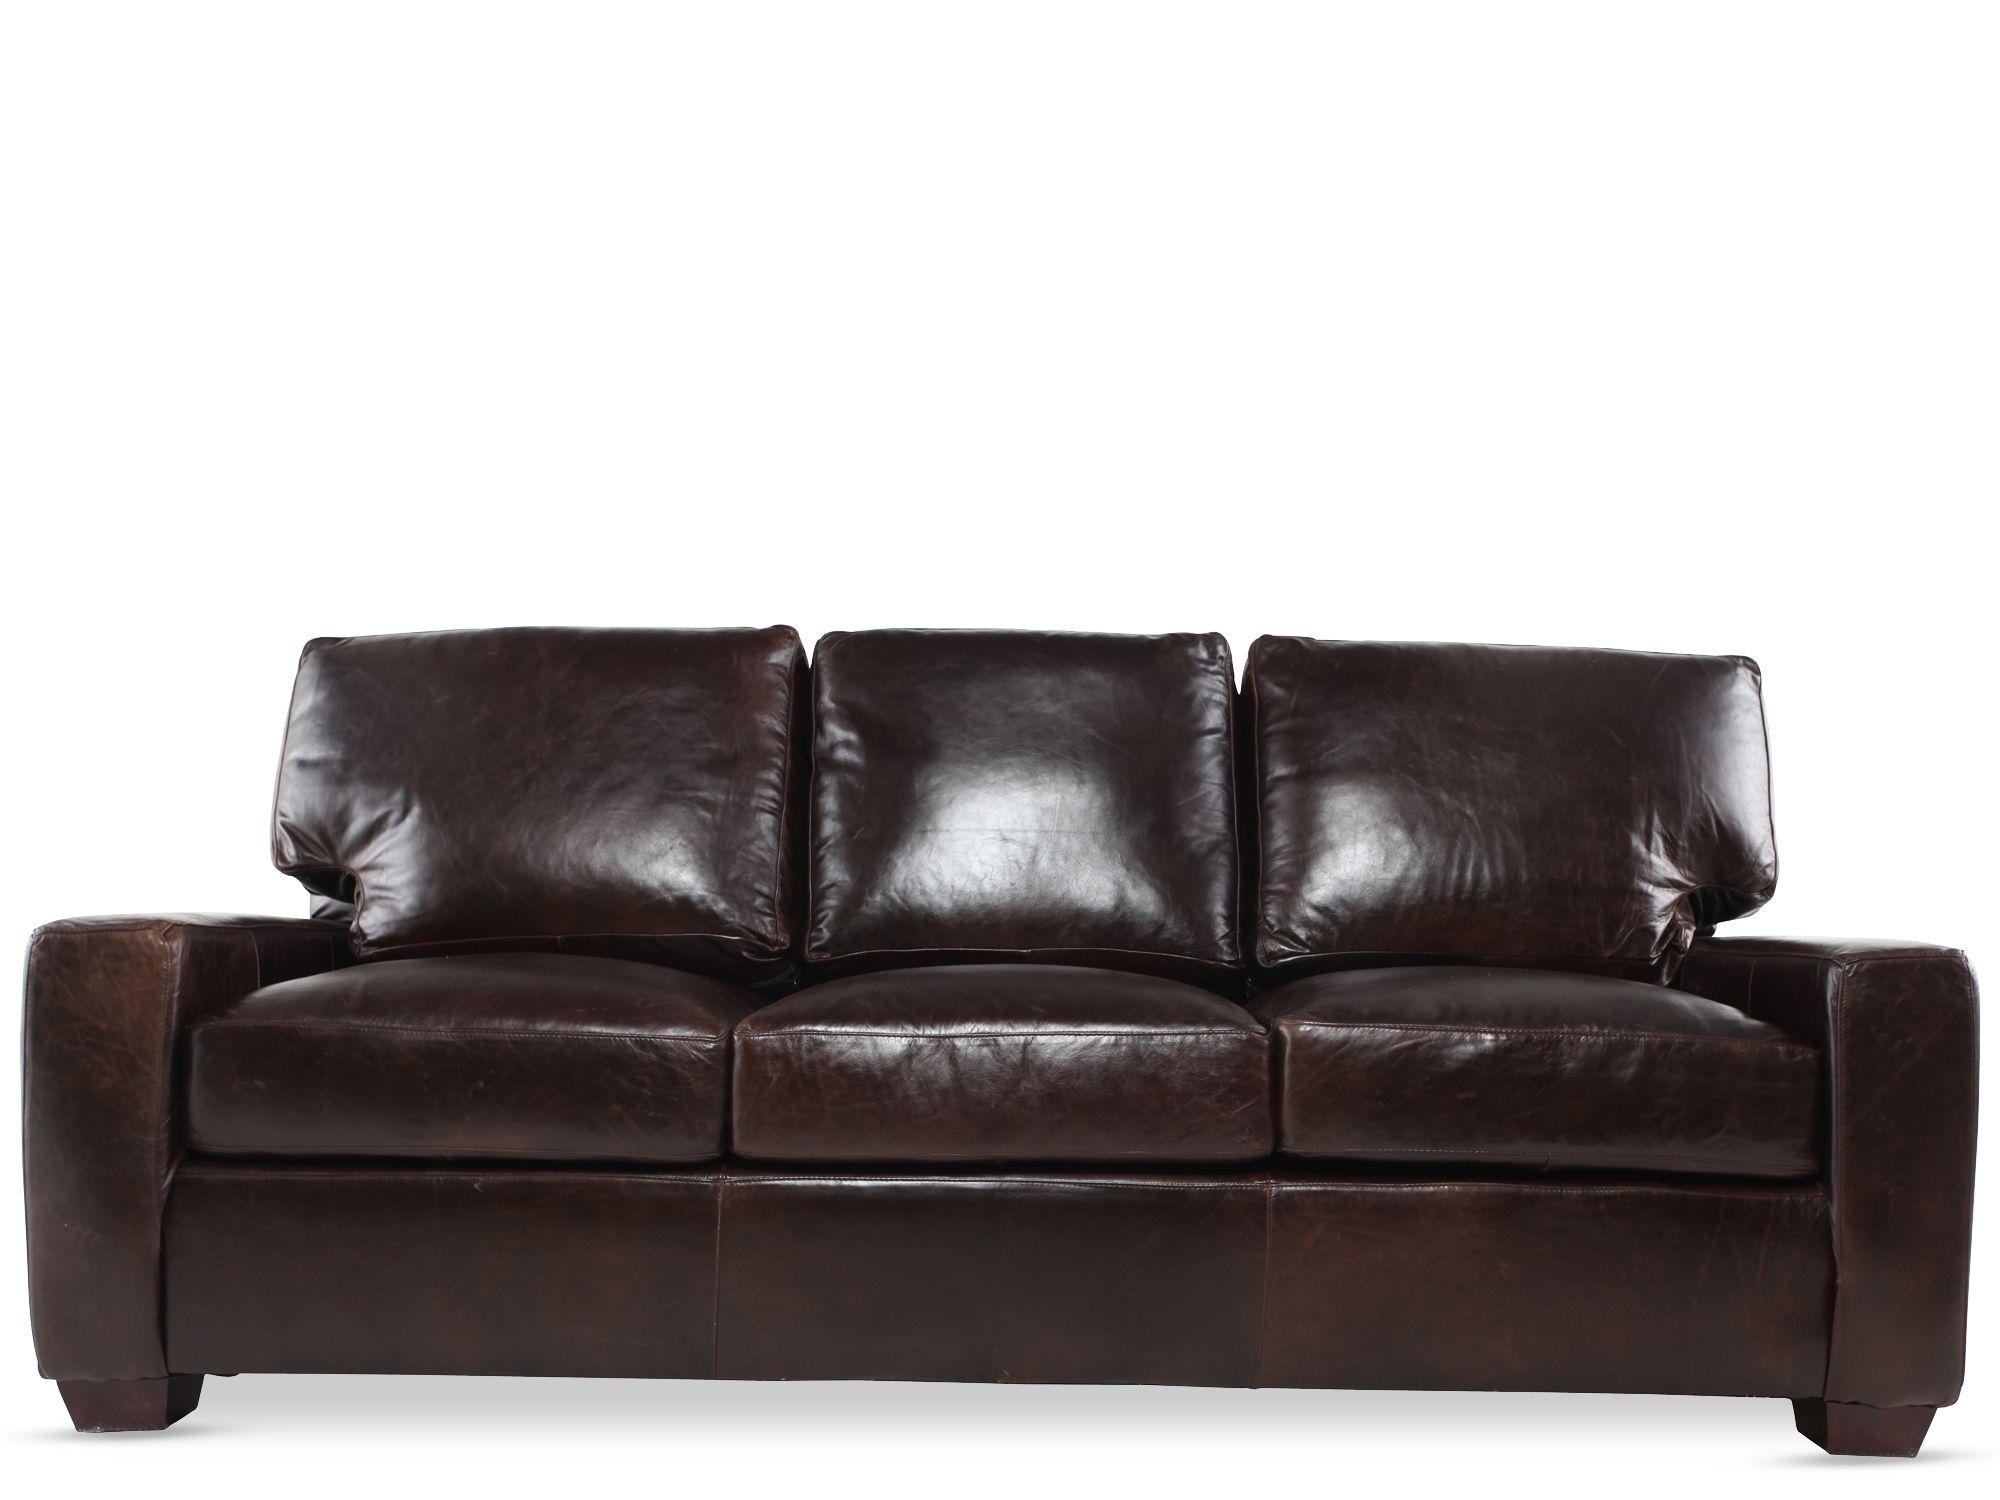 Sofas Center : Ergonomic Ava Velvet Tufted Sleeper Sofa 77 Ava Regarding Ava Velvet Tufted Sleeper Sofas (View 12 of 20)